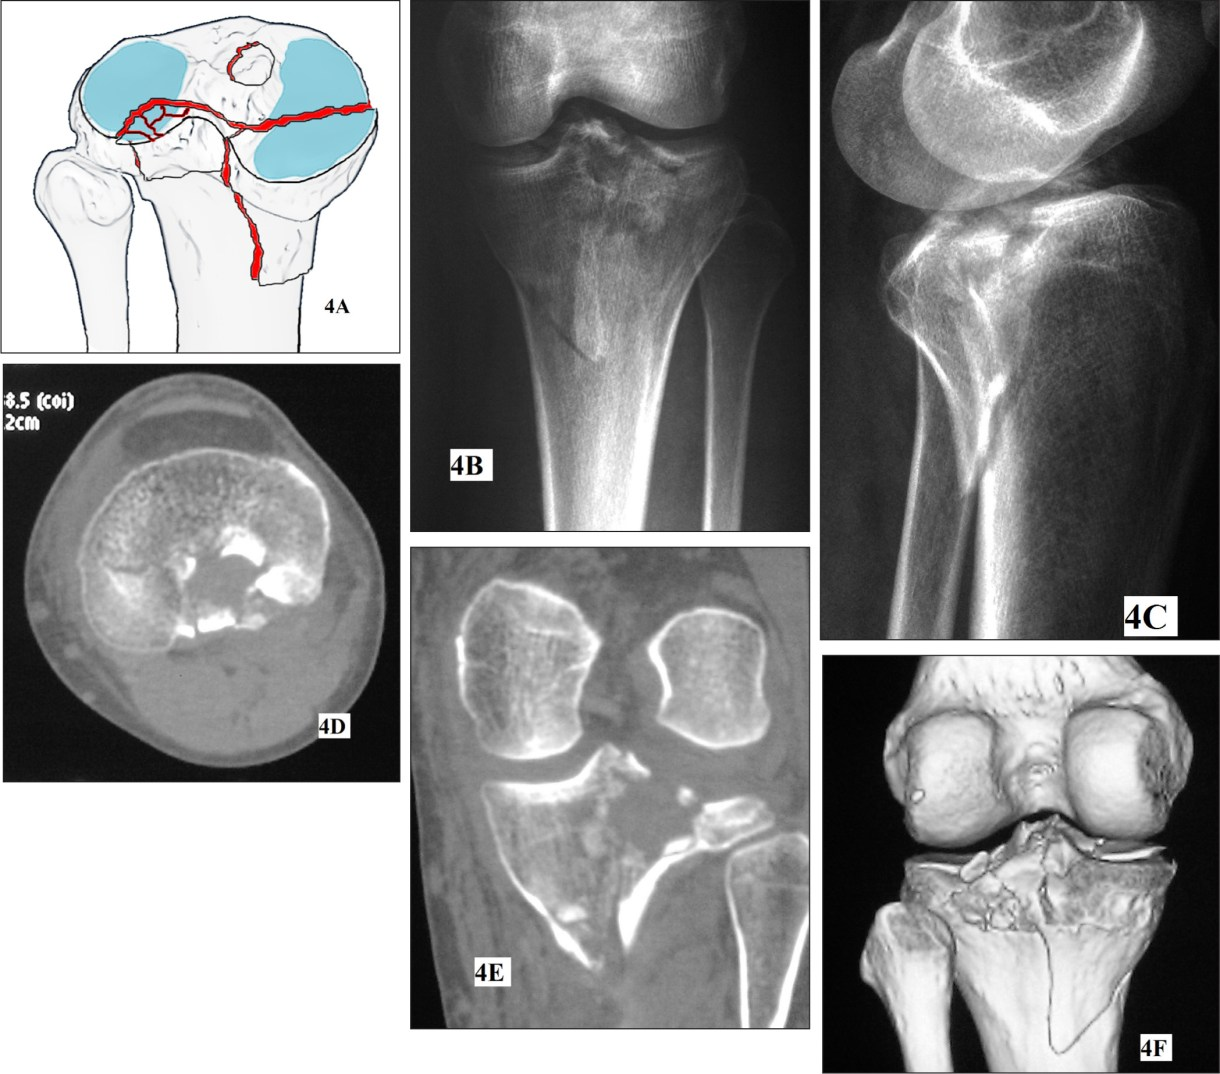 Posteromedial condyle split fracture with posterior articular impaction of the lateral plateau. Schematic drawing showing the characteristics of the fracture pattern (A). Anteroposterior (B) and lateral (C) radiographs of a posteromedial plateau split fracture associated with articular depression of the posterolateral plateau. The spike of the split posteromedial fragment locates on the posterior aspect of the medial condyle. Axial computed tomography (CT) image showing a posteromedial condyle split fragment with posterolateral quadrant impaction (posterior bicondylar fractures) (D). The posterior cortex of the lateral plateau is broken. Posterior coronal CT image showing posteromedial plateau fragment and comminuted impaction of the posterolateral plateau (E). Three-dimensional reconstruction showing the fracture pattern and fragment anatomy (F).